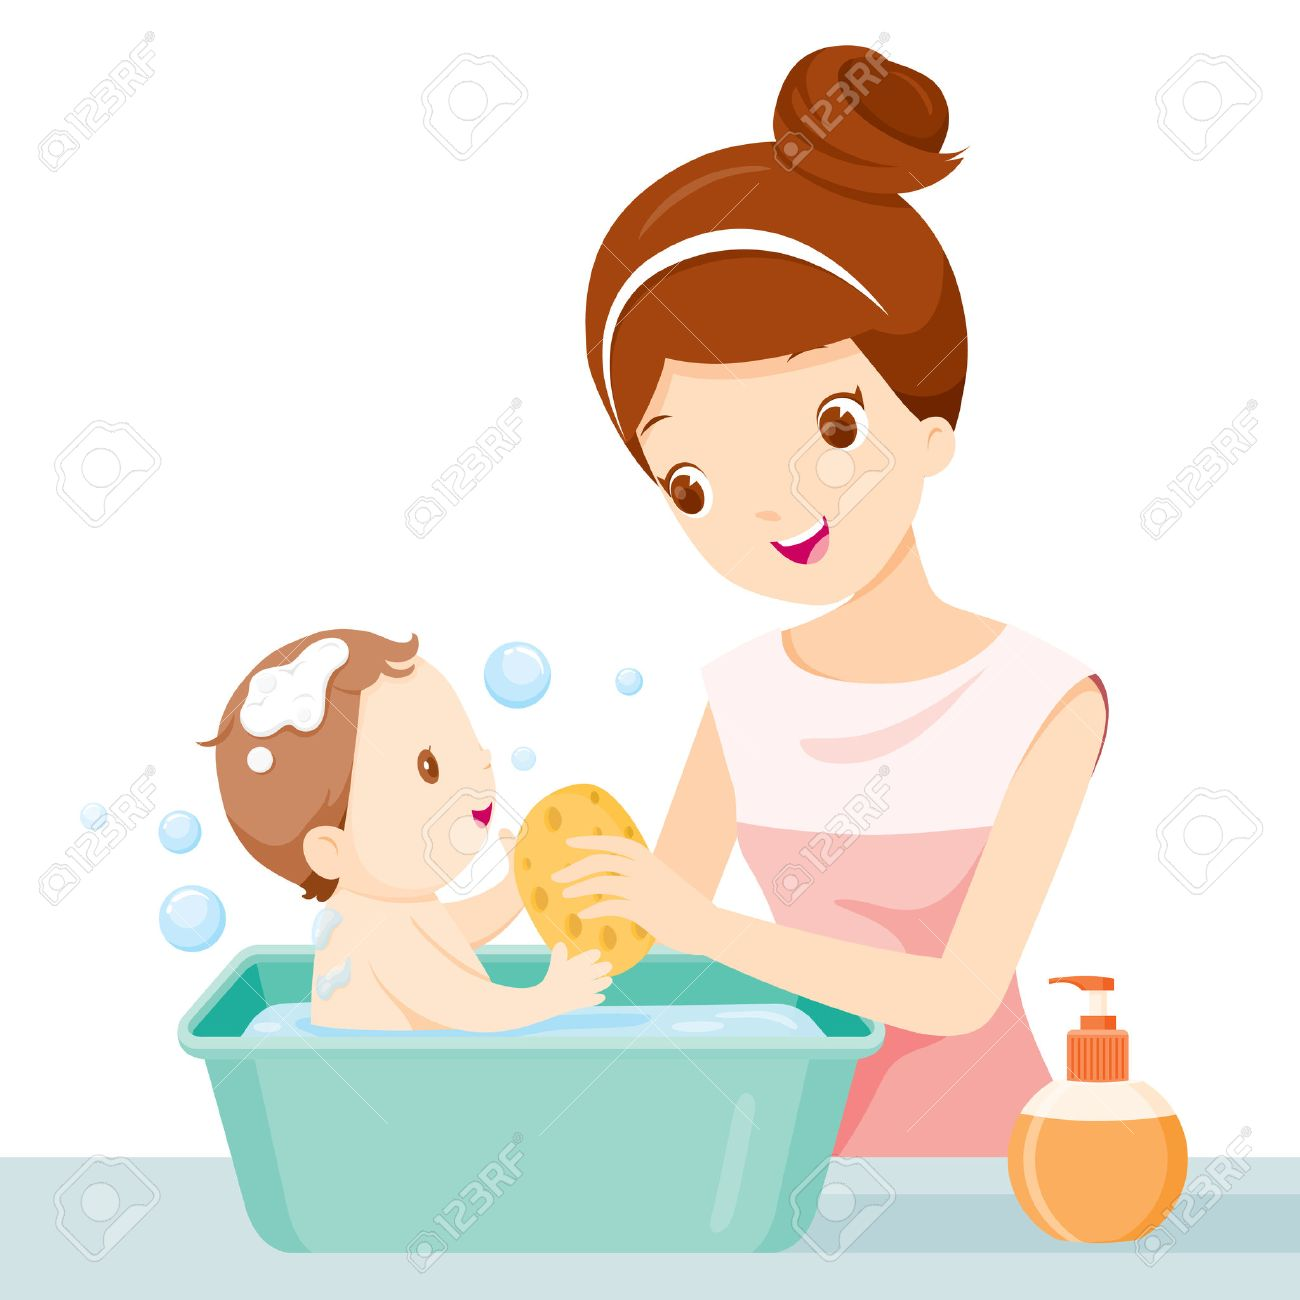 Mother Washing Baby Mother Baby Bathing Washing Mother S Royalty Free Cliparts Vectors And Stock Illustration Image 55425117